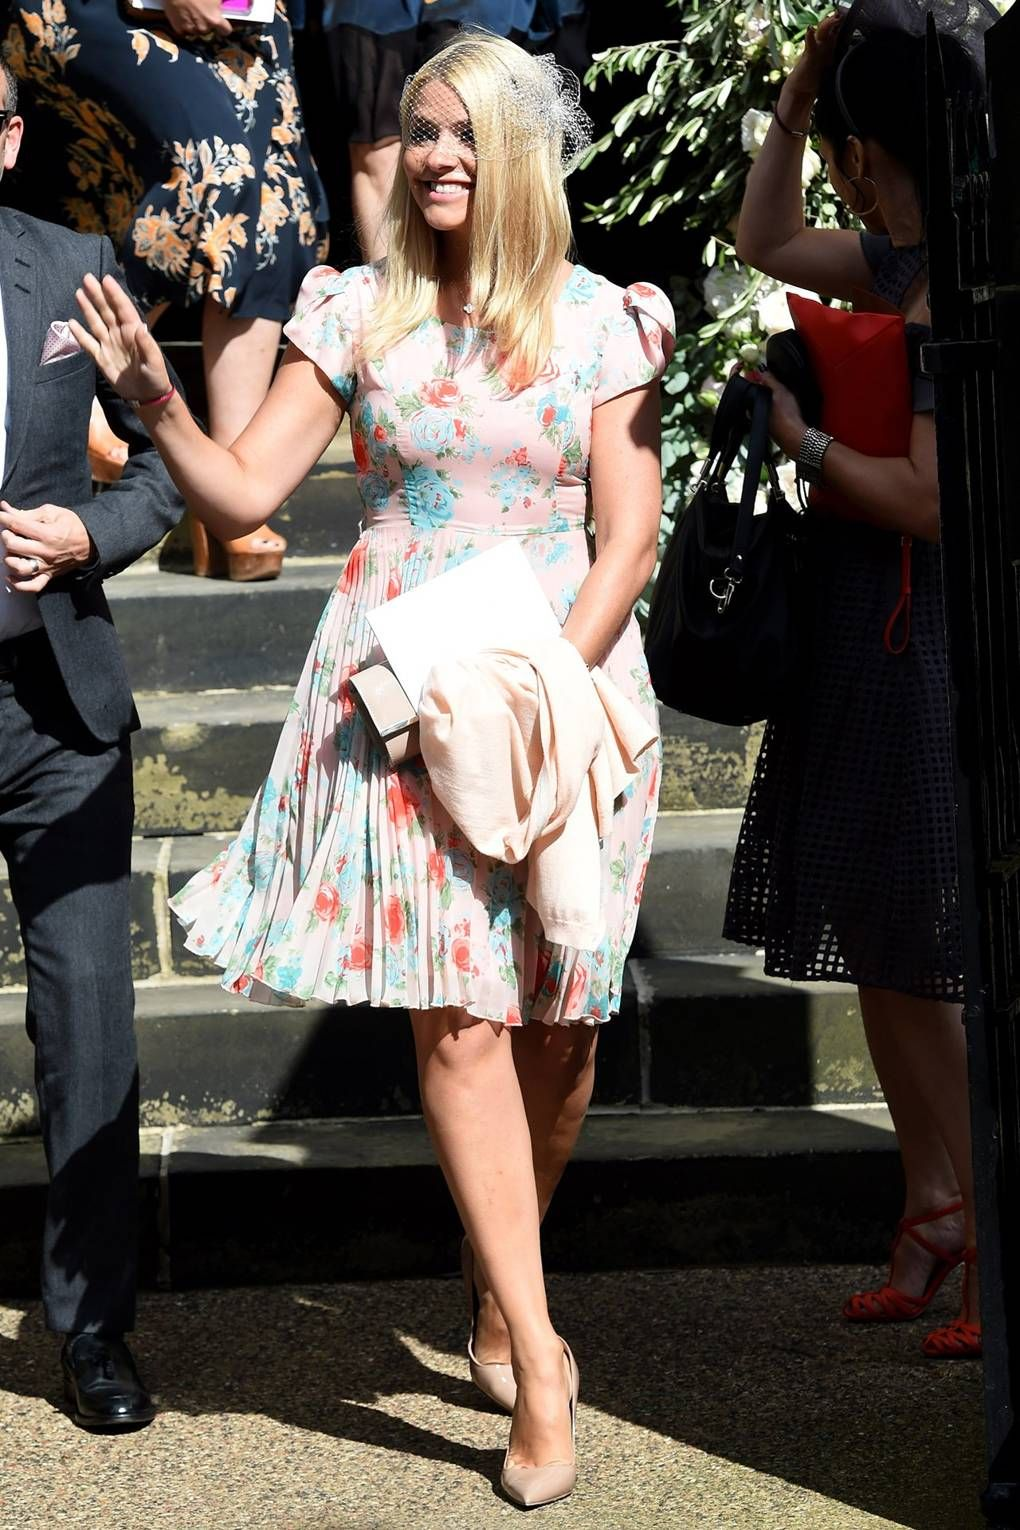 The Best Dressed Celebrity Wedding Guests Of 2018 With Images Wedding Guest Dress Pippa Middleton Wedding Dress Wedding Dress Trends